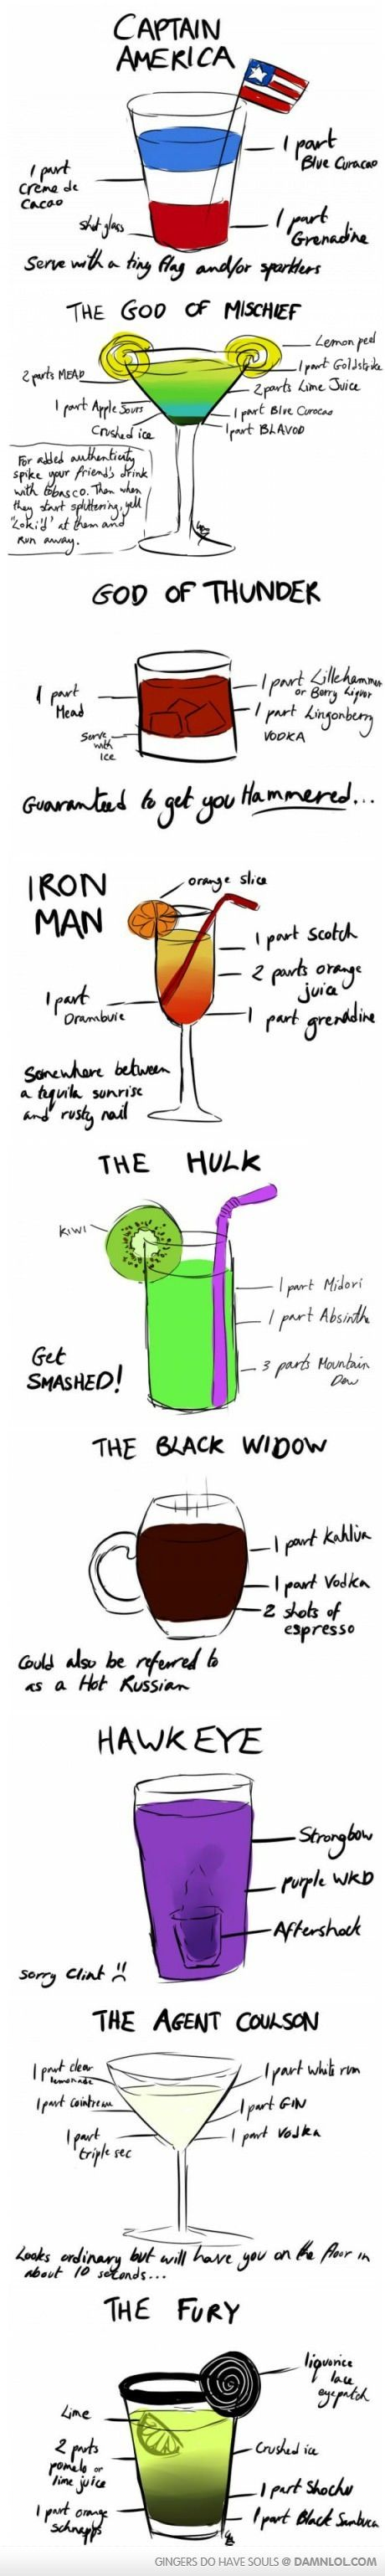 Avengers drinks!! This cracks me up. Obviously I'm not going to make them (yet), but these are too funny to ignore